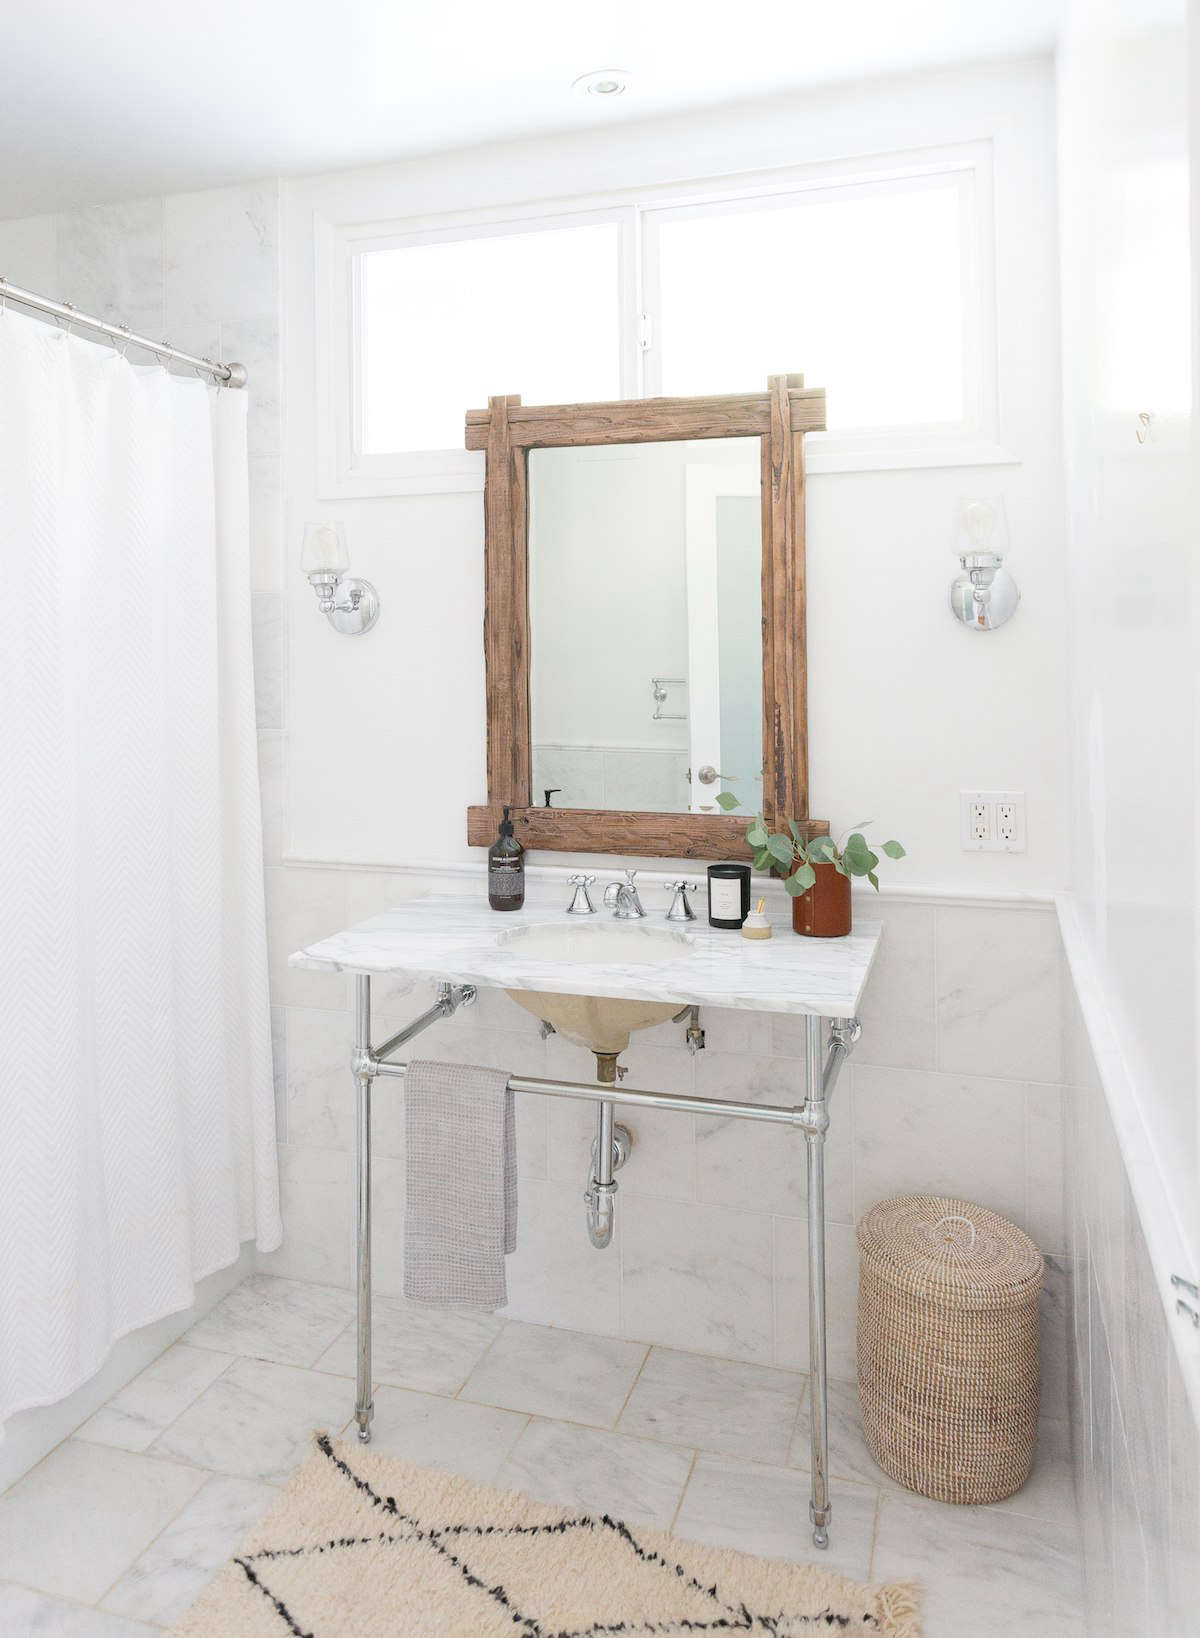 """Hunter used Remodelista as a guide when remodeling her bathrooms, including the upstairs powder room shown here. Our White Bathroom Roundup, she said, """"showed us how much flexibility there was to work with using an all-white palette."""""""